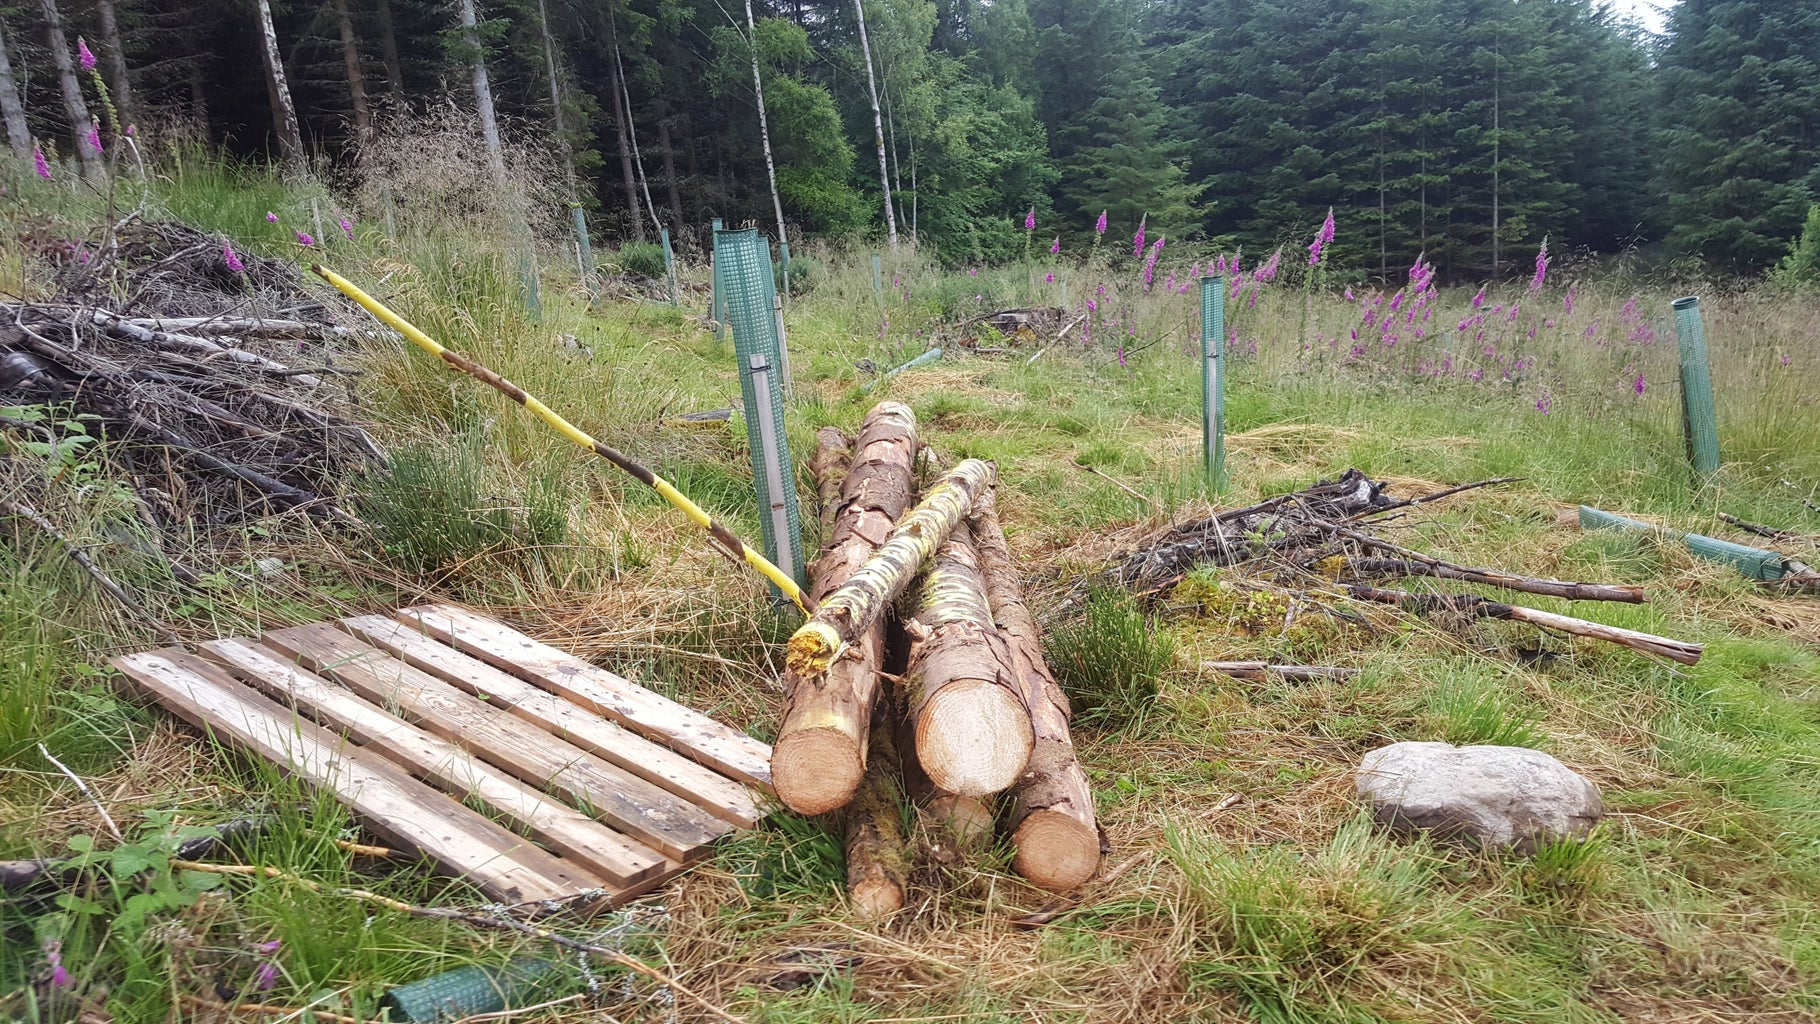 Chainsawing / Logging